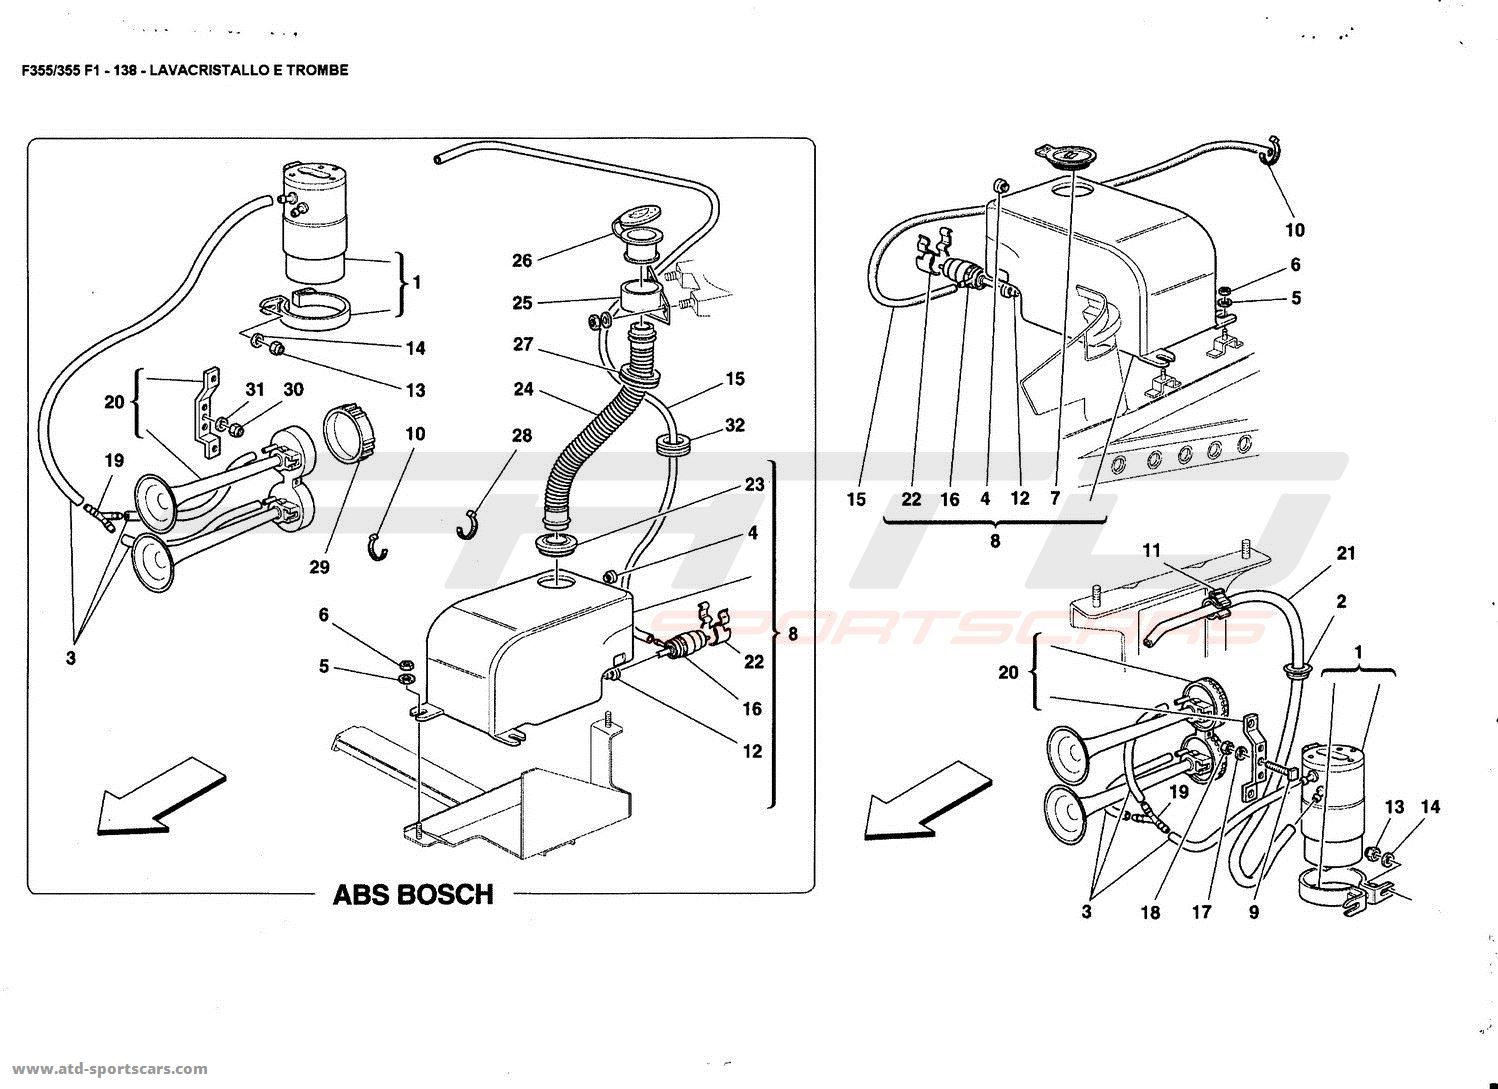 Ferrari F355 5 2 Et F1 Glass Washer And Horns Parts At Atd Sportscars Atd Sportscars